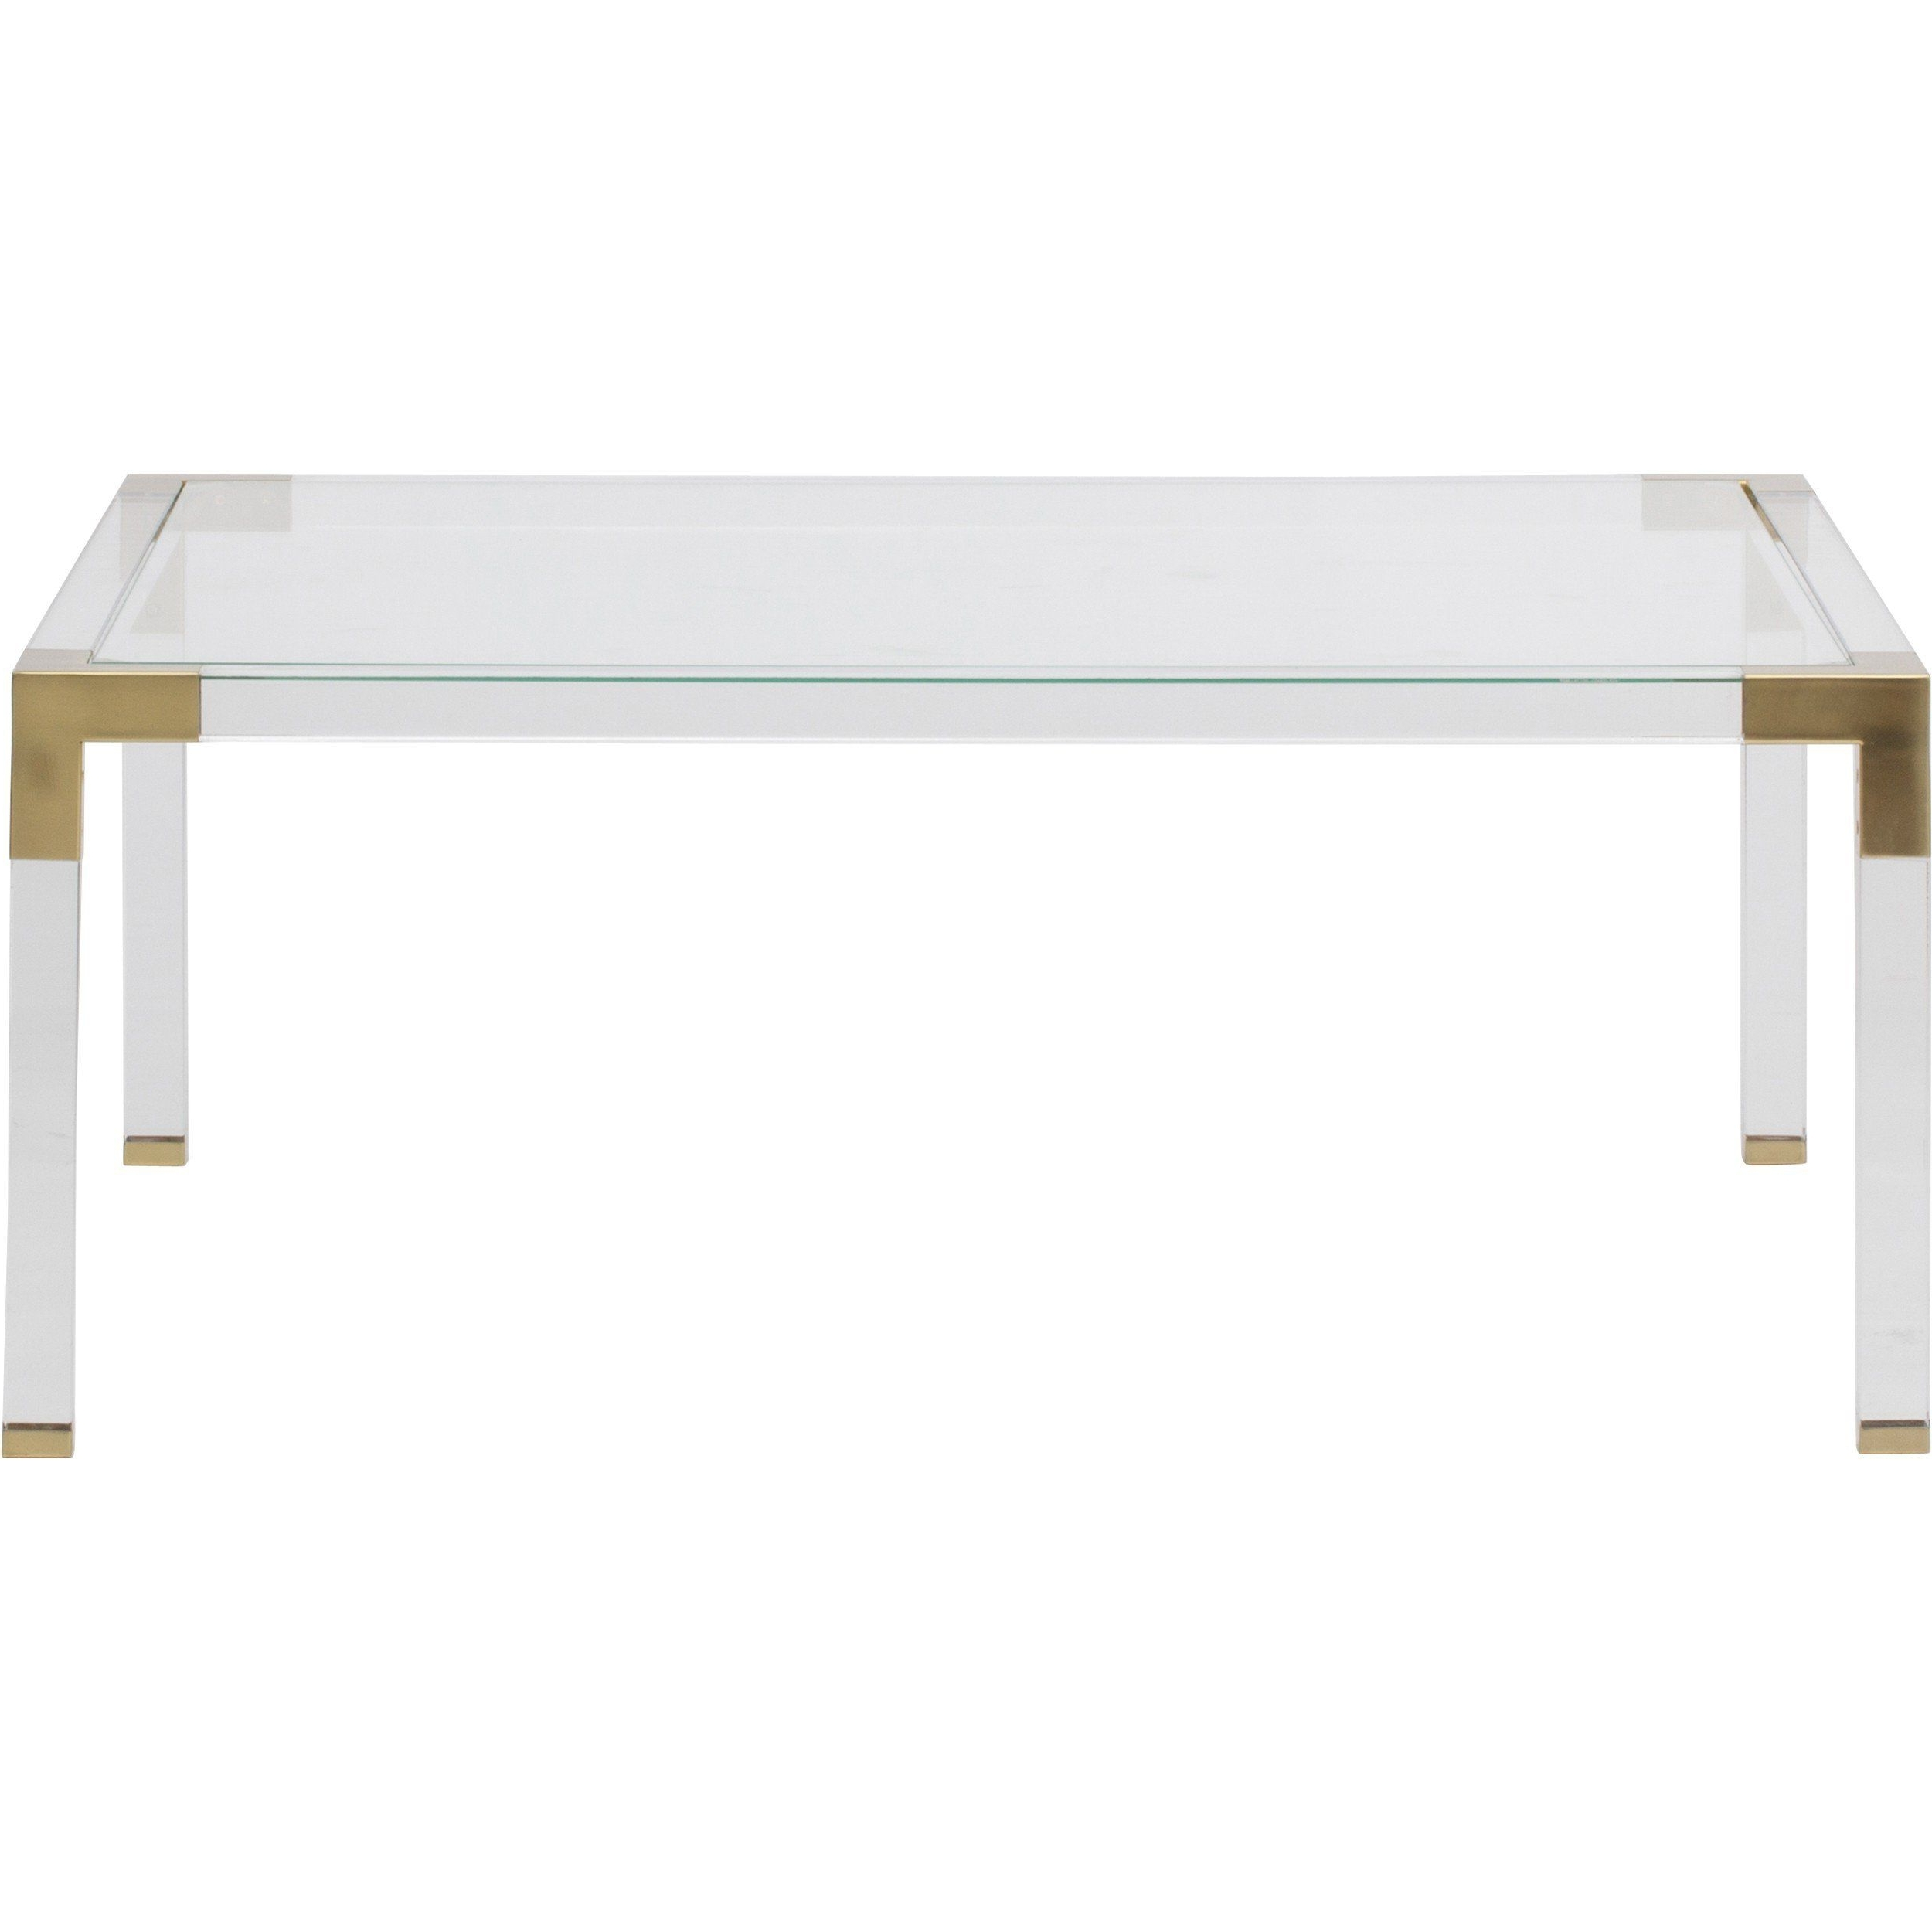 Well Known Slab Large Marble Coffee Tables With Brass Base Within Maci Acrylic Coffee Table (View 19 of 20)